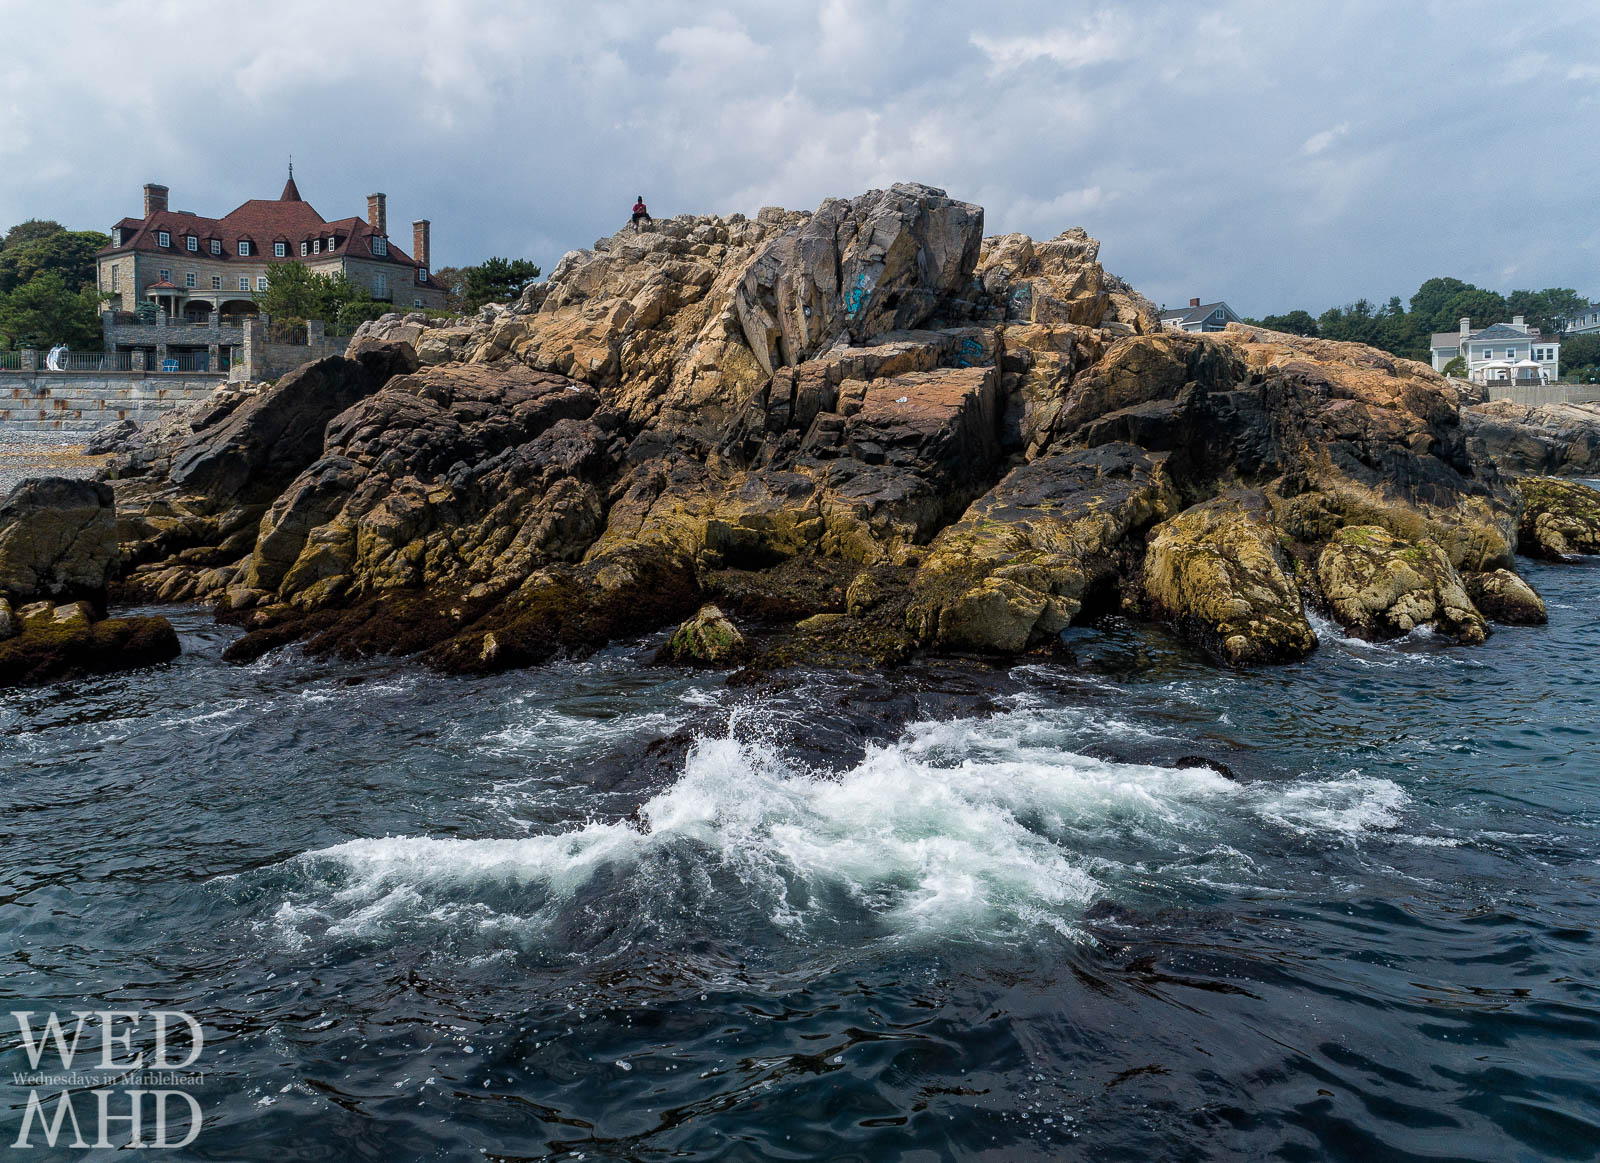 An aerial image captured a few feet above the waves at Castle Rock captures the iconic location from a new perspective